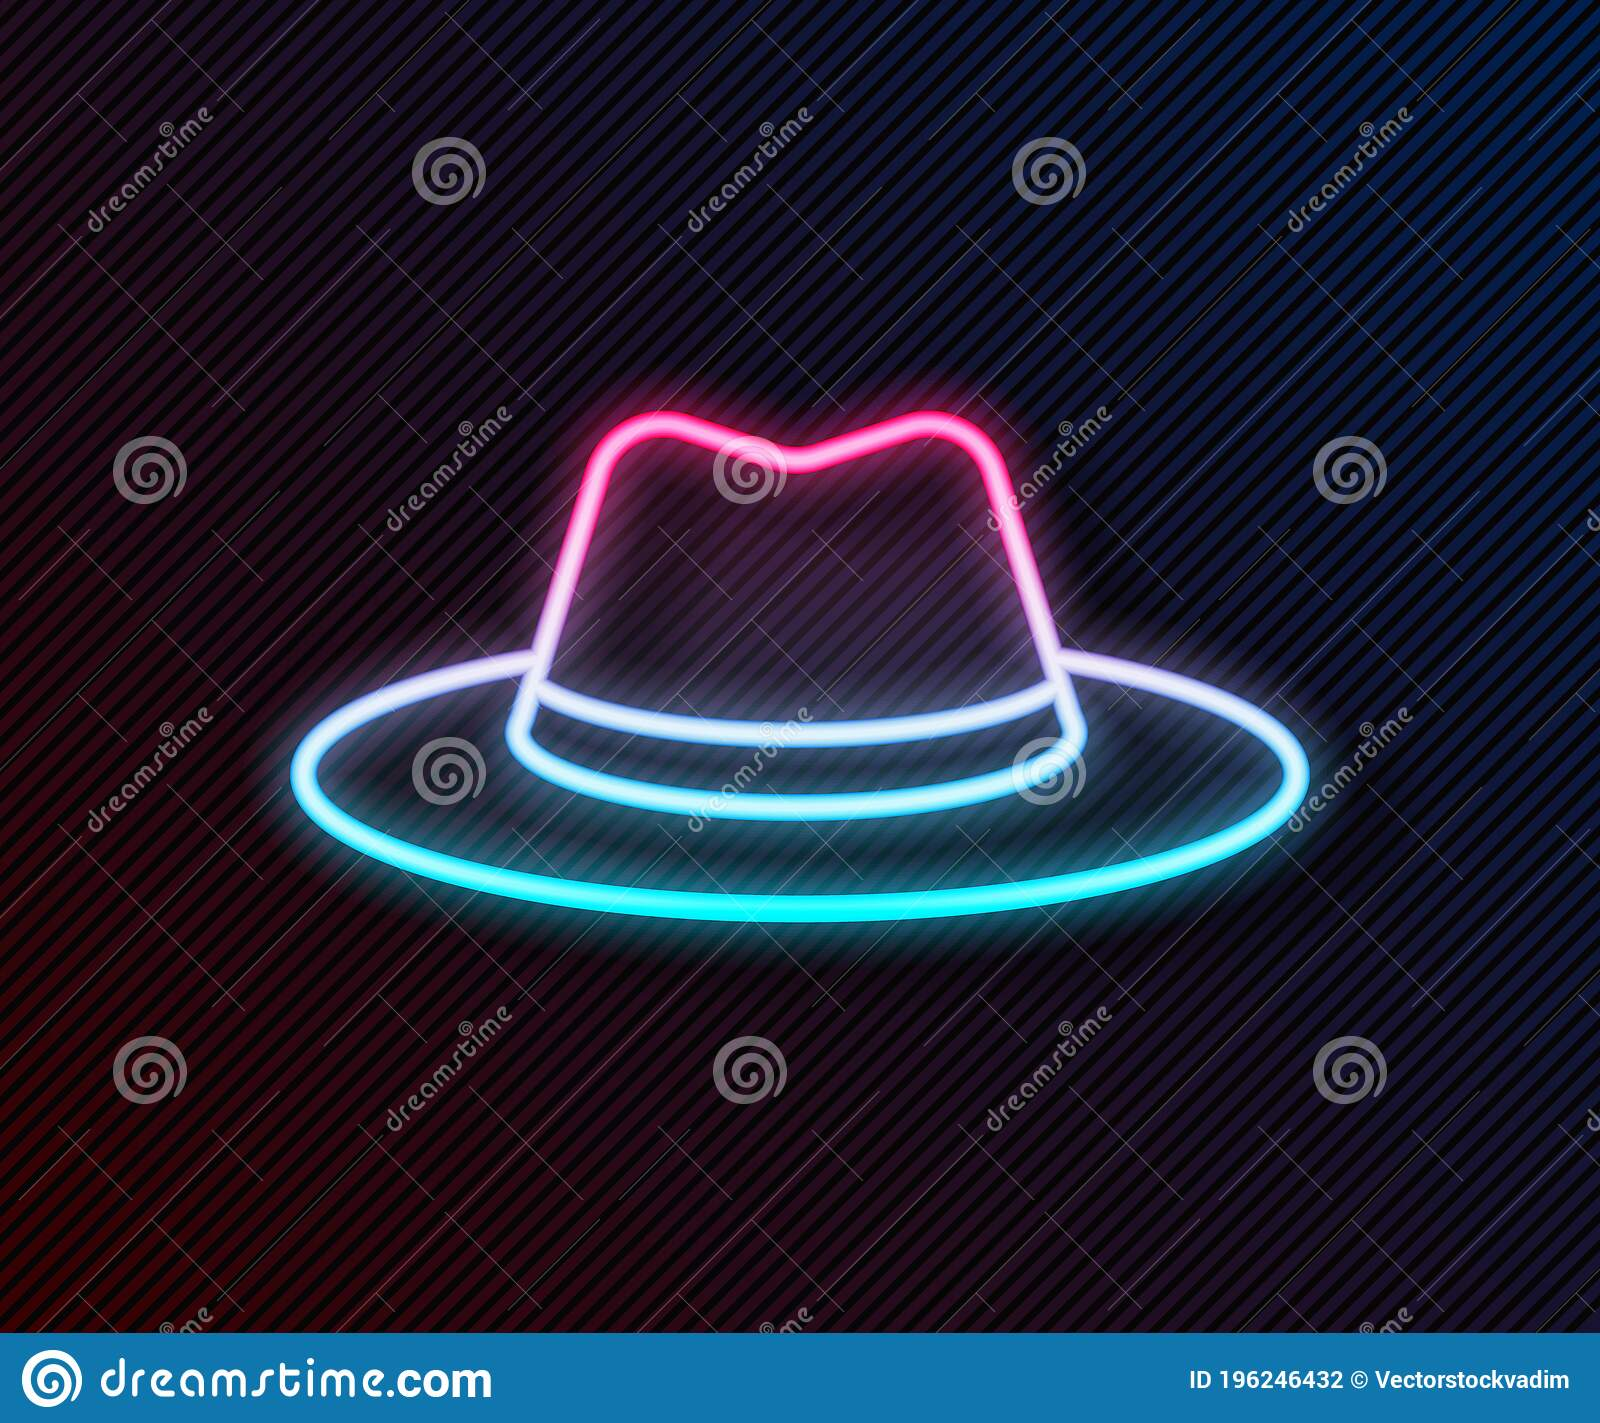 Neon Cowboy Hat Illustrations Vectors Use it in your personal projects or share it as a cool sticker on tumblr, whatsapp, facebook messenger. dreamstime com